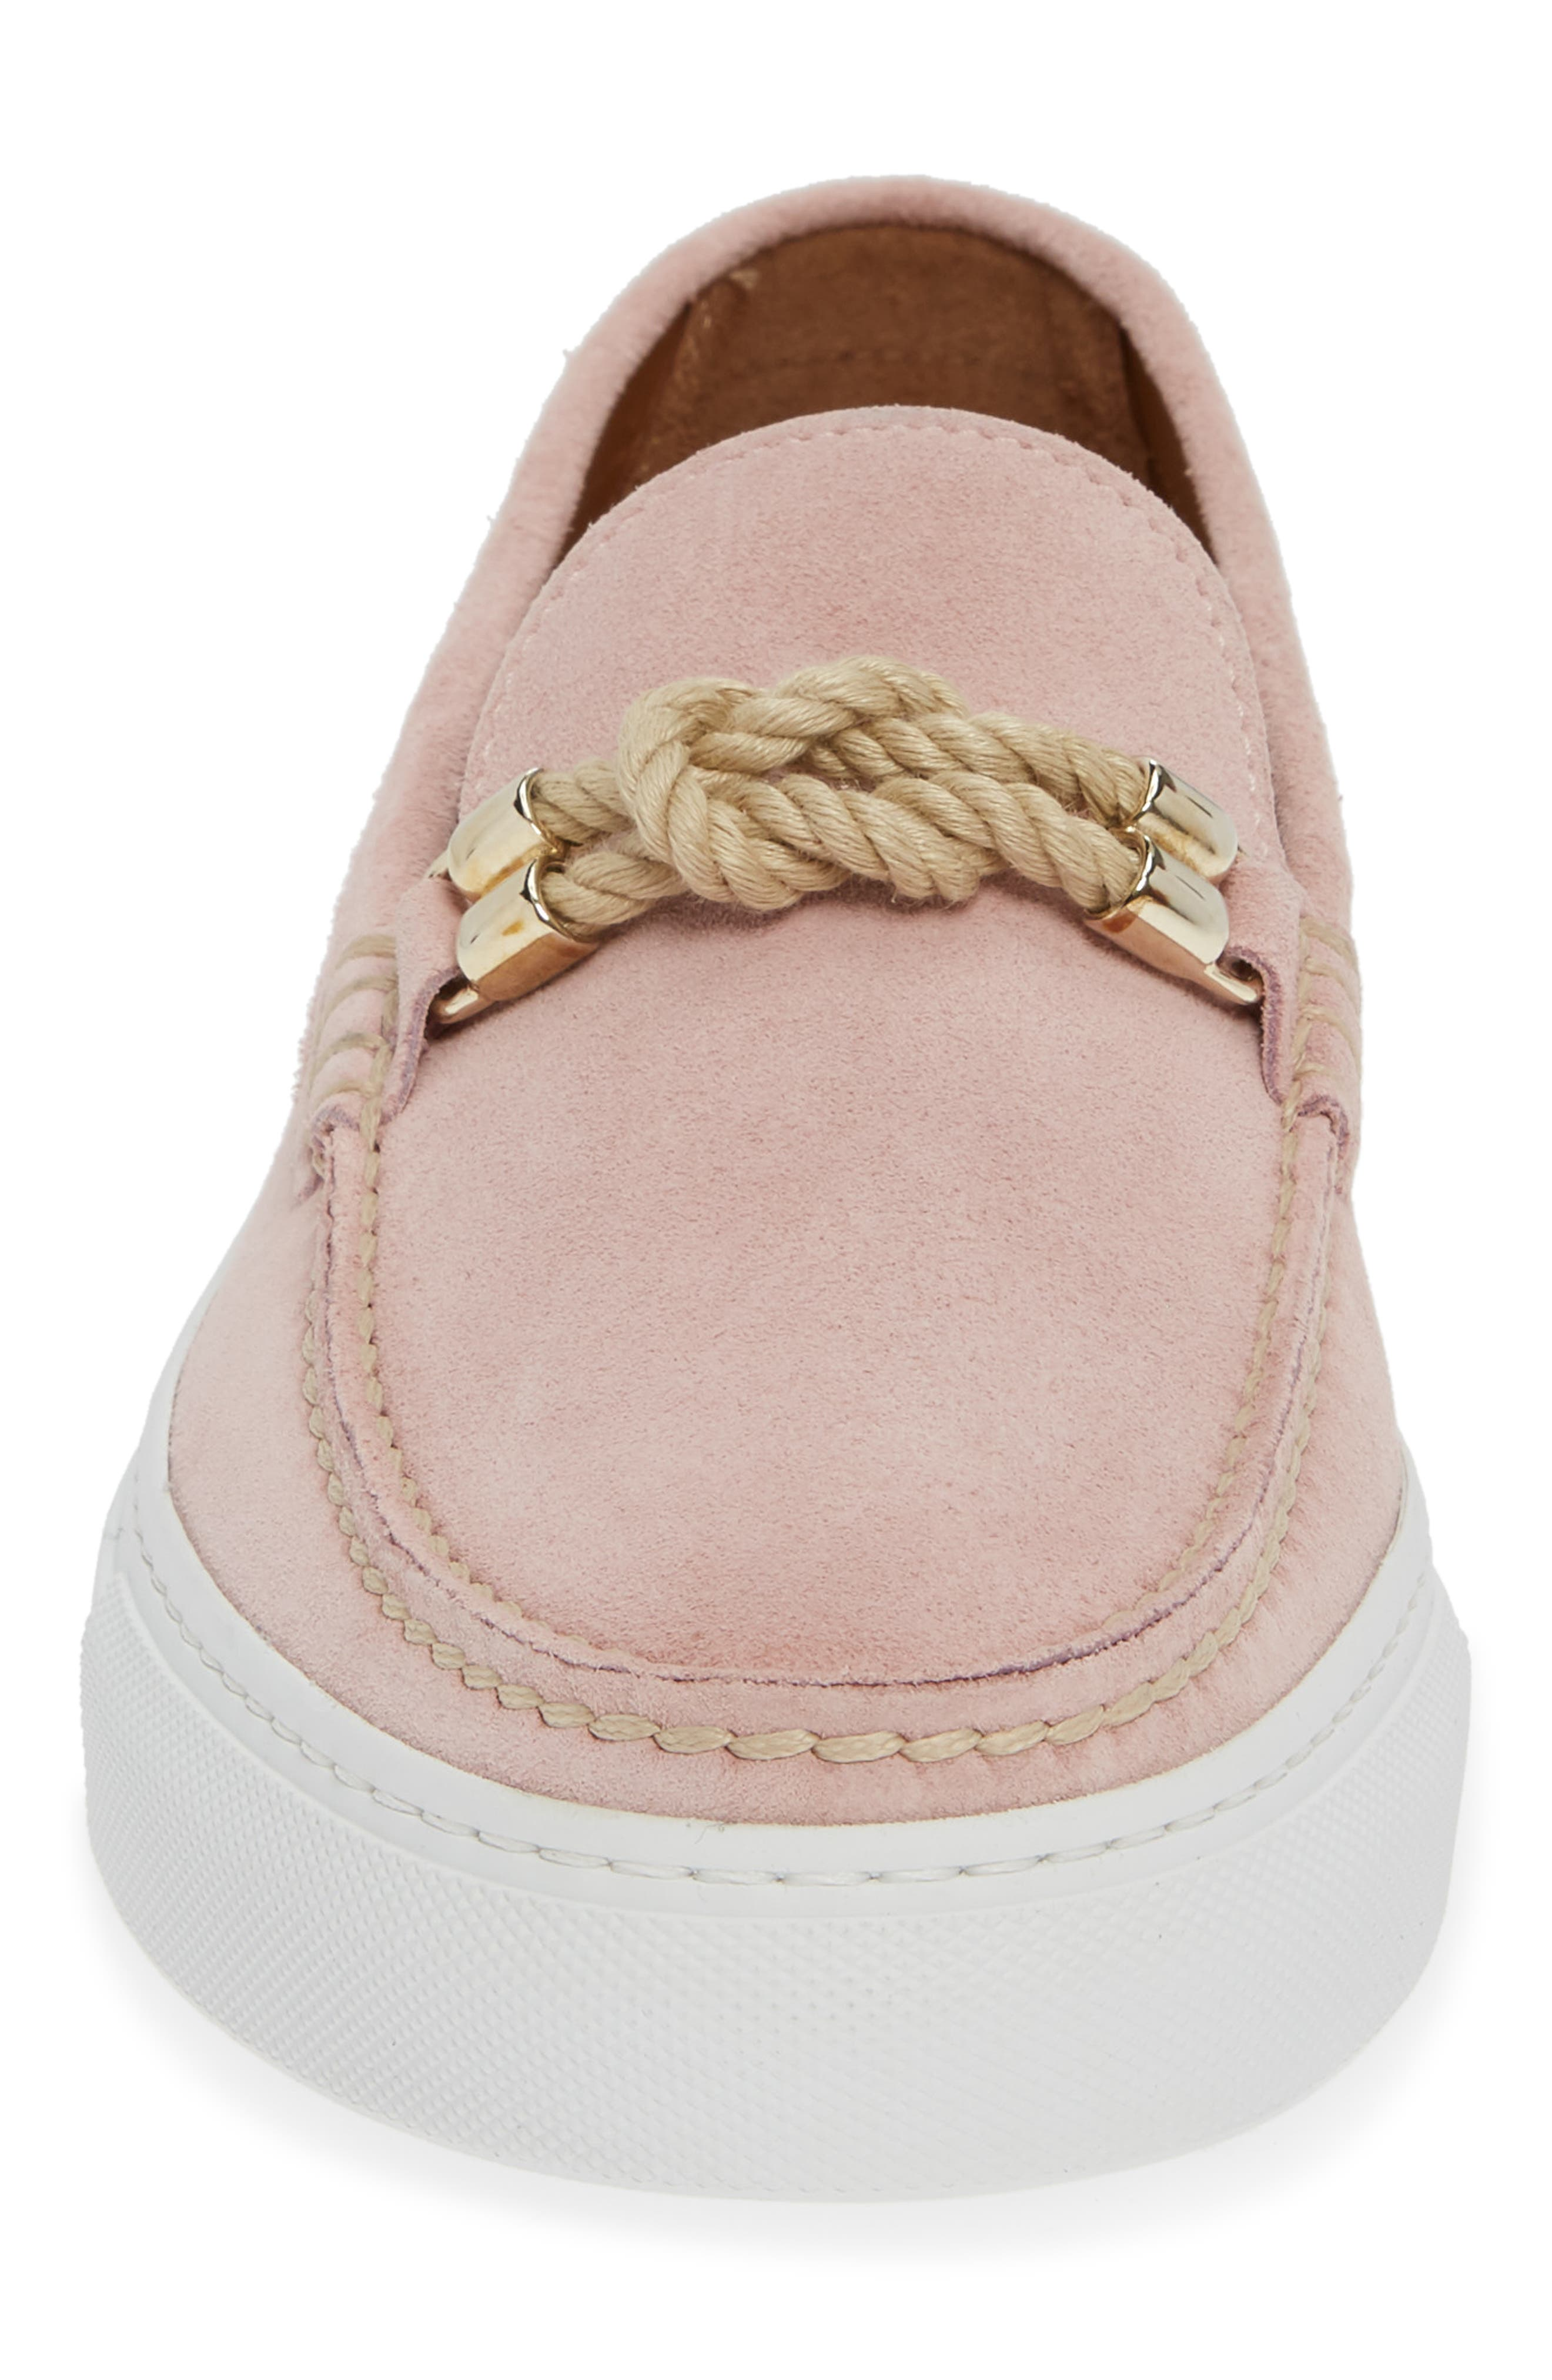 Britton Square Knot Loafer,                             Alternate thumbnail 4, color,                             ROSE SUEDE